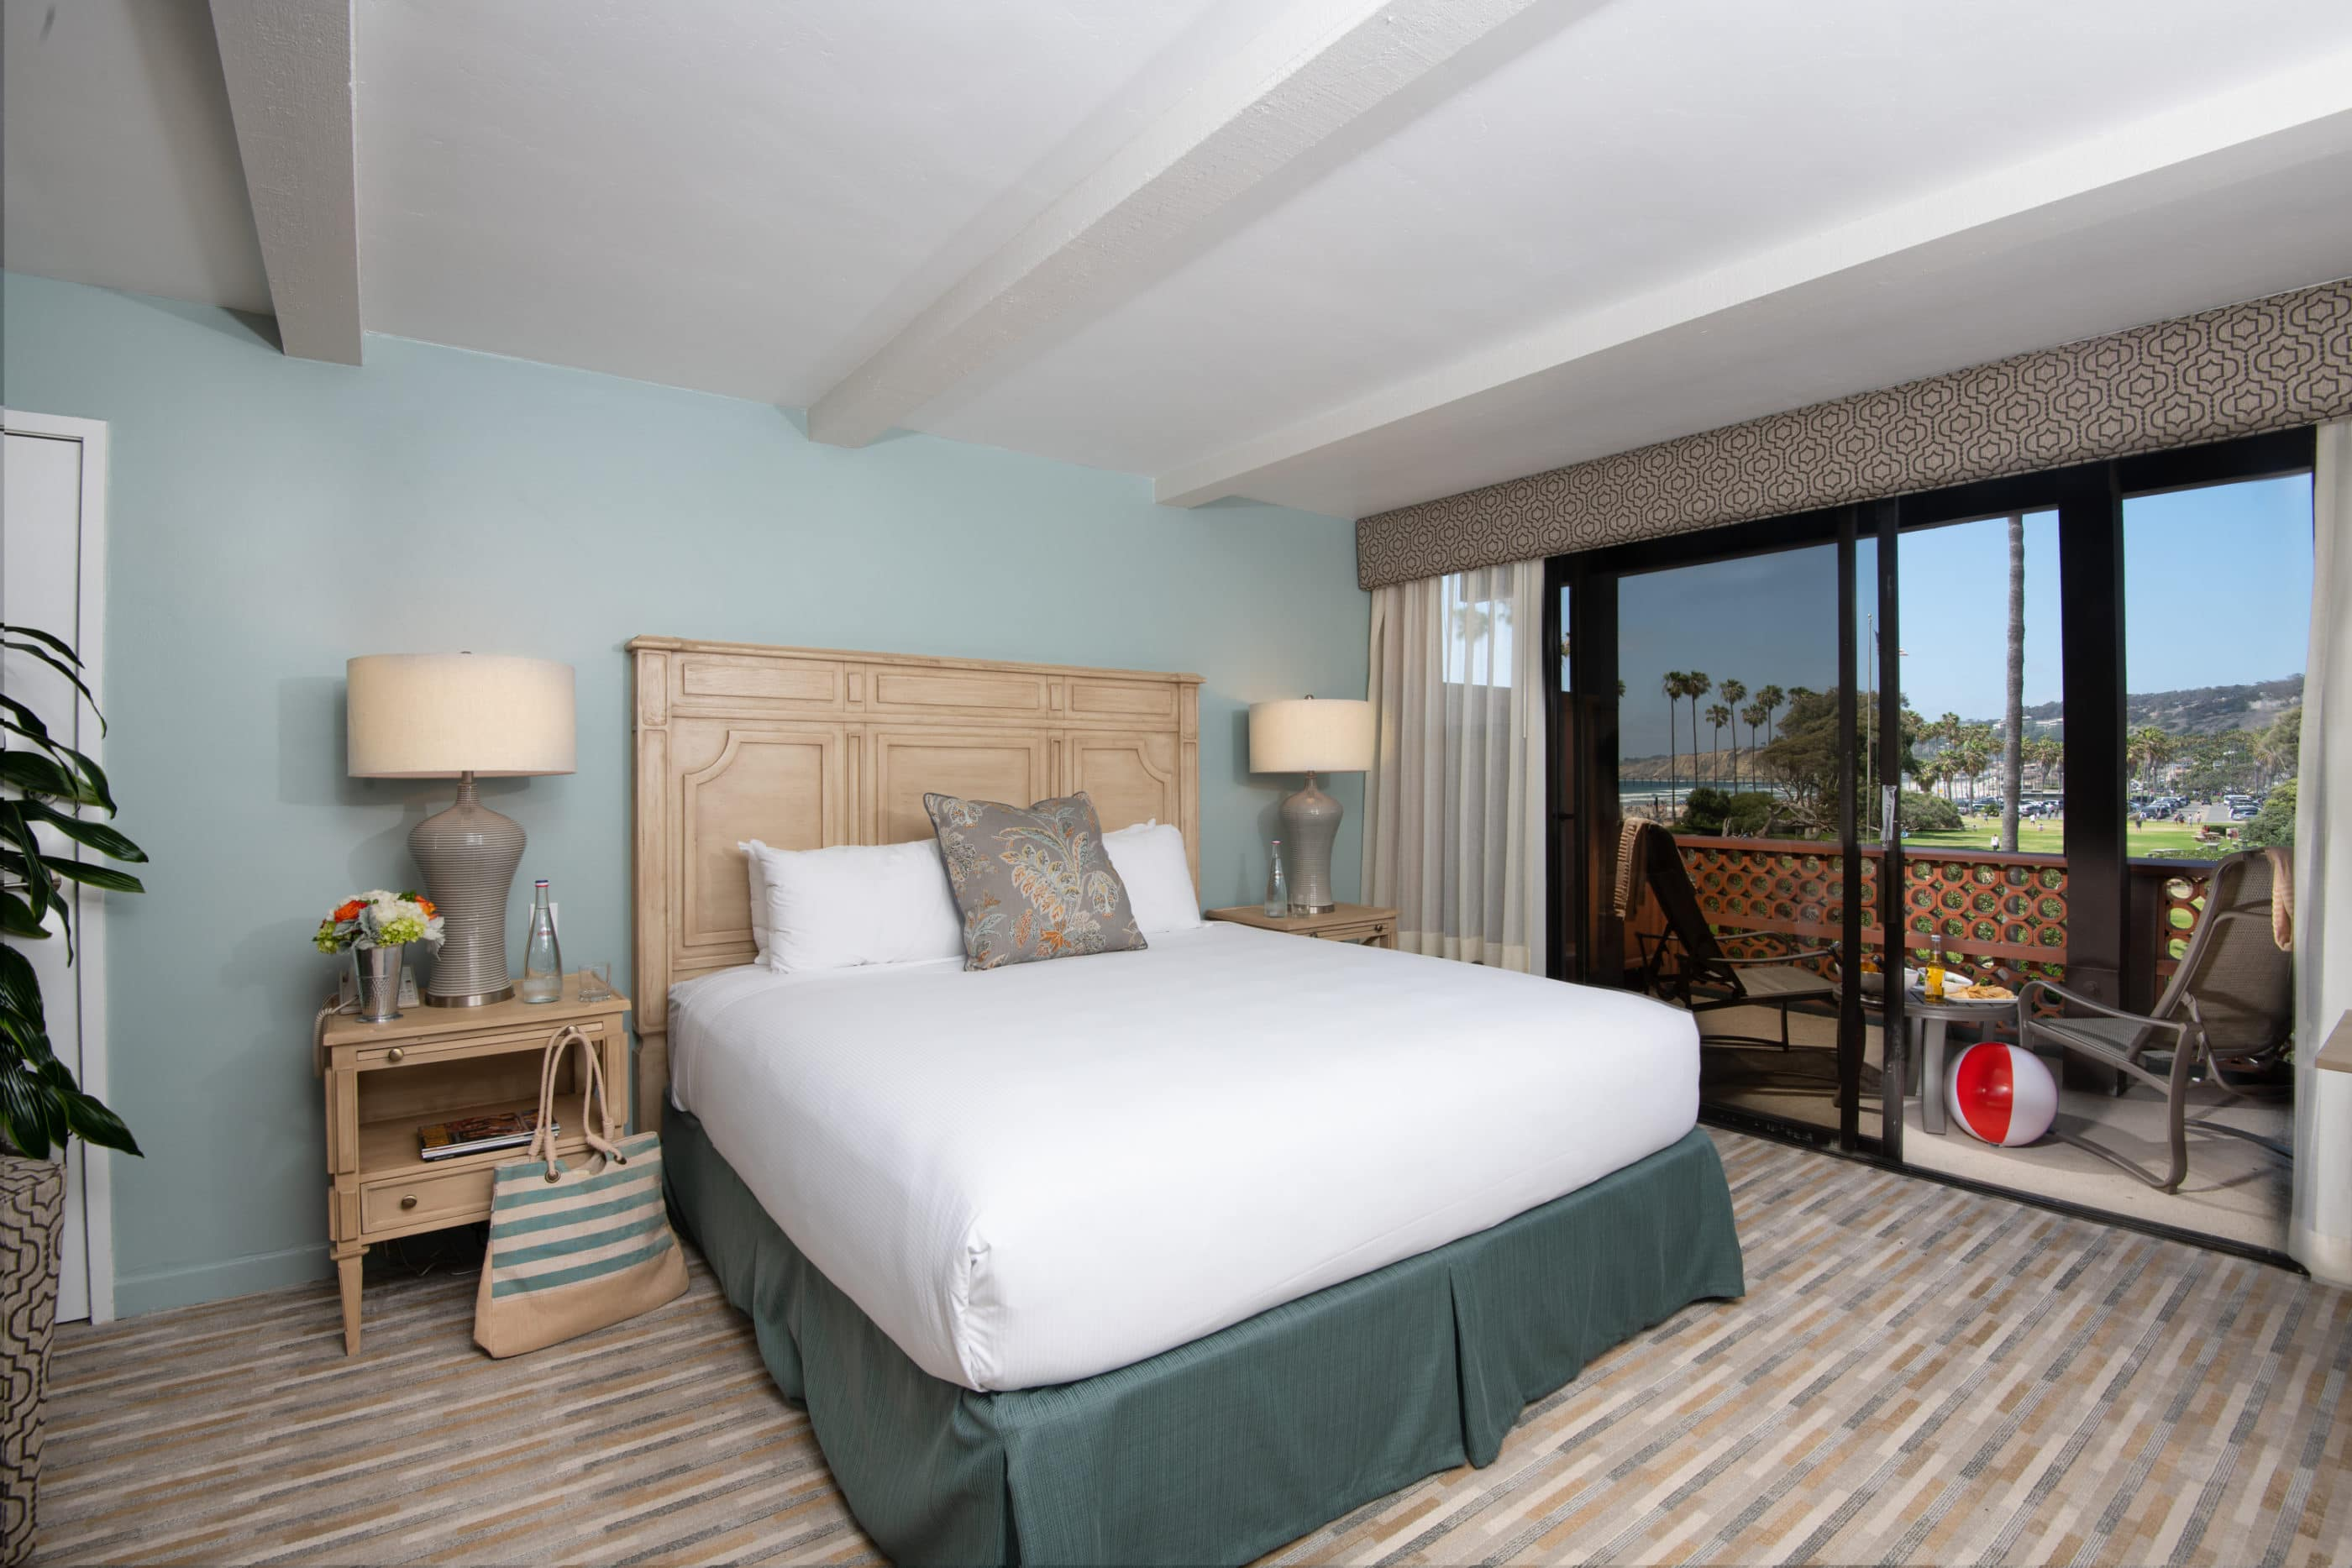 La Jolla Shores Hotel coastal view room